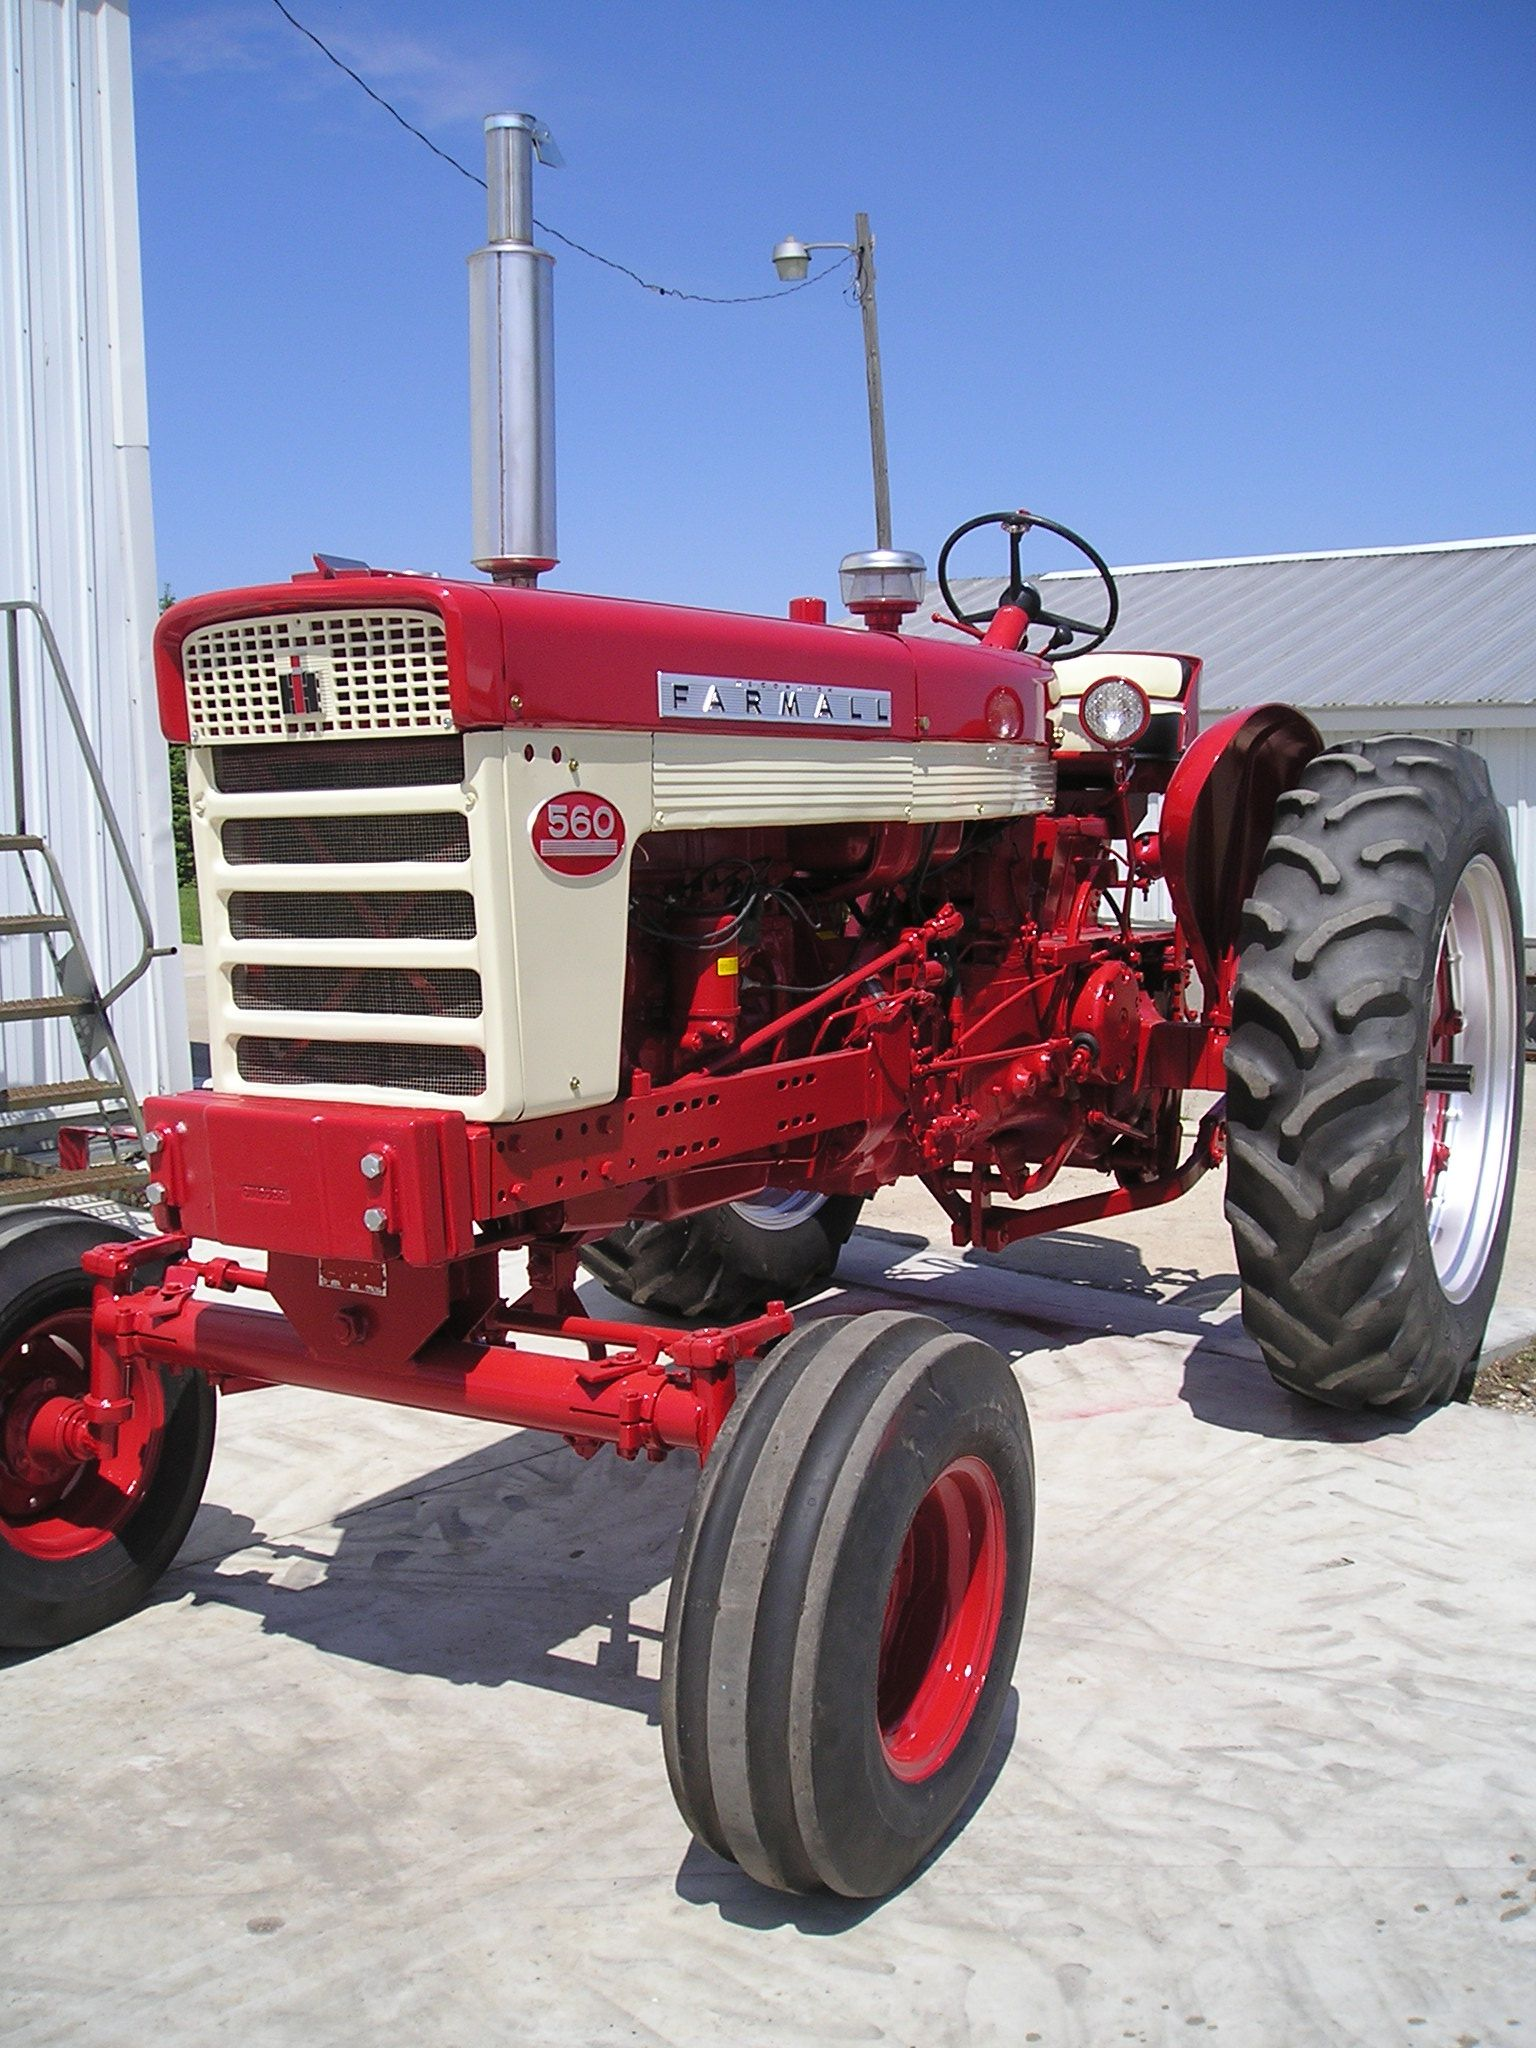 Restored Antique Tractors : Restored farmall its identical to ours farm life